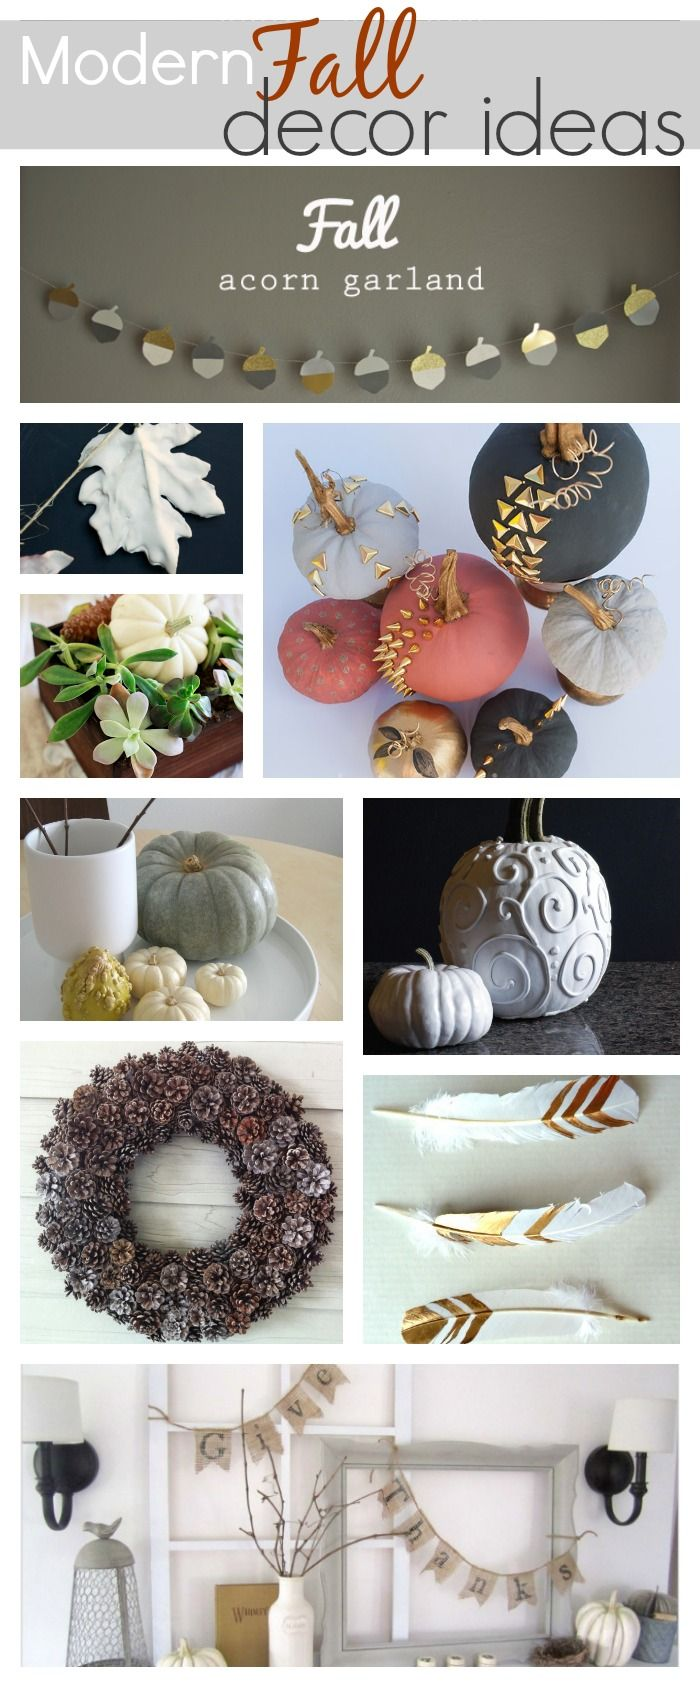 Decorate your house this Fall with modern and neutral decor for an elegant room.